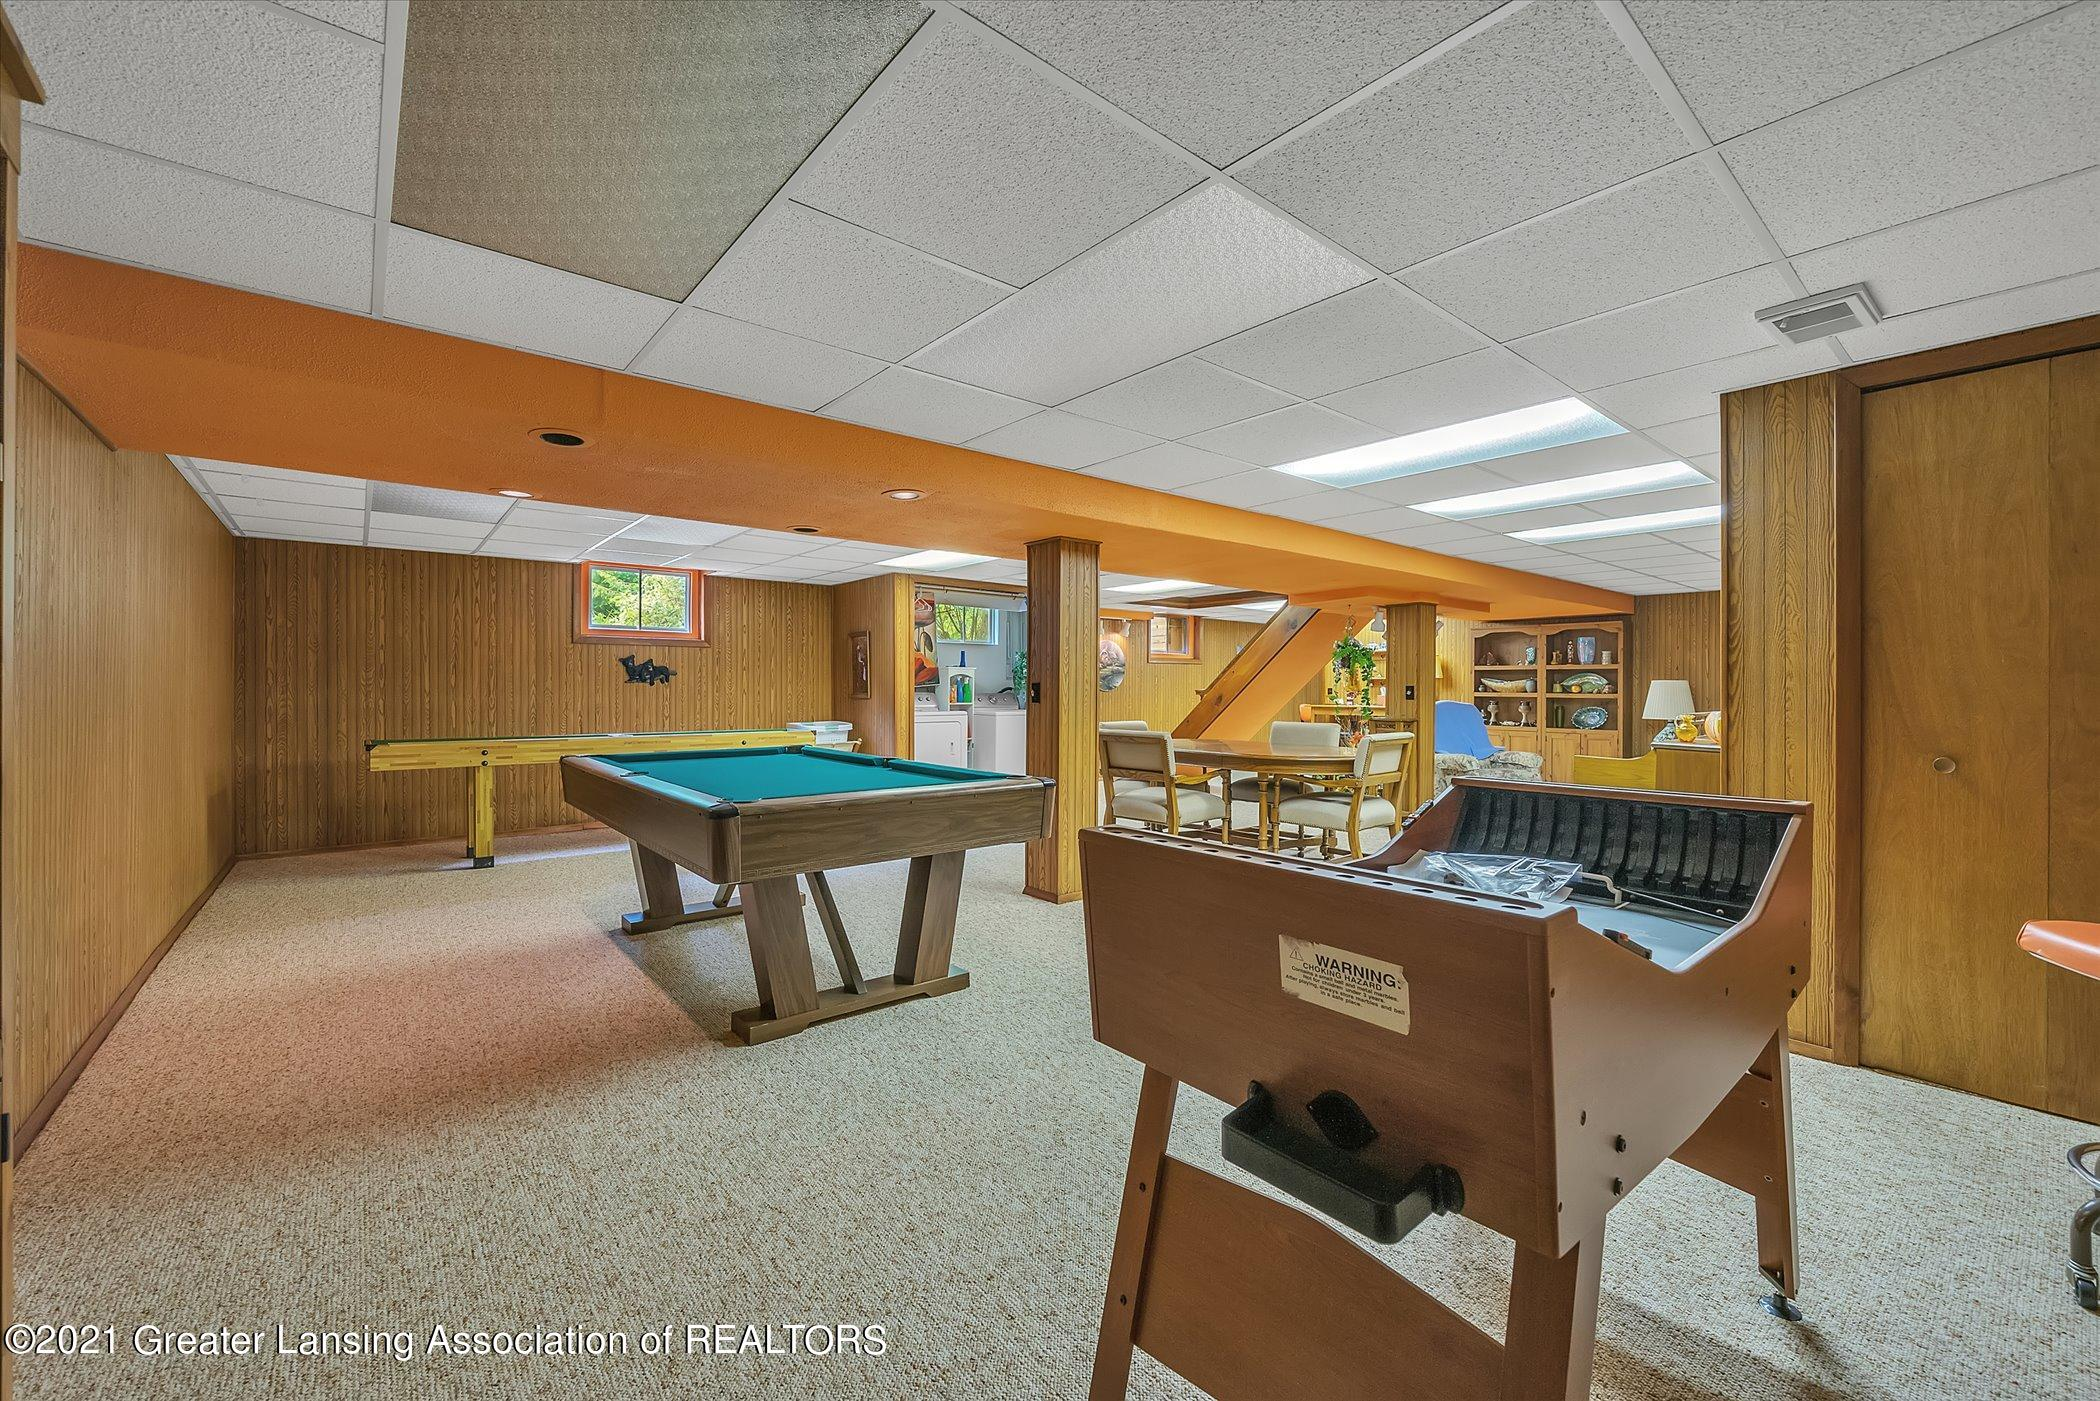 5556 Wood Valley Dr - (23) LOWER LEVEL Recreation Room - 23